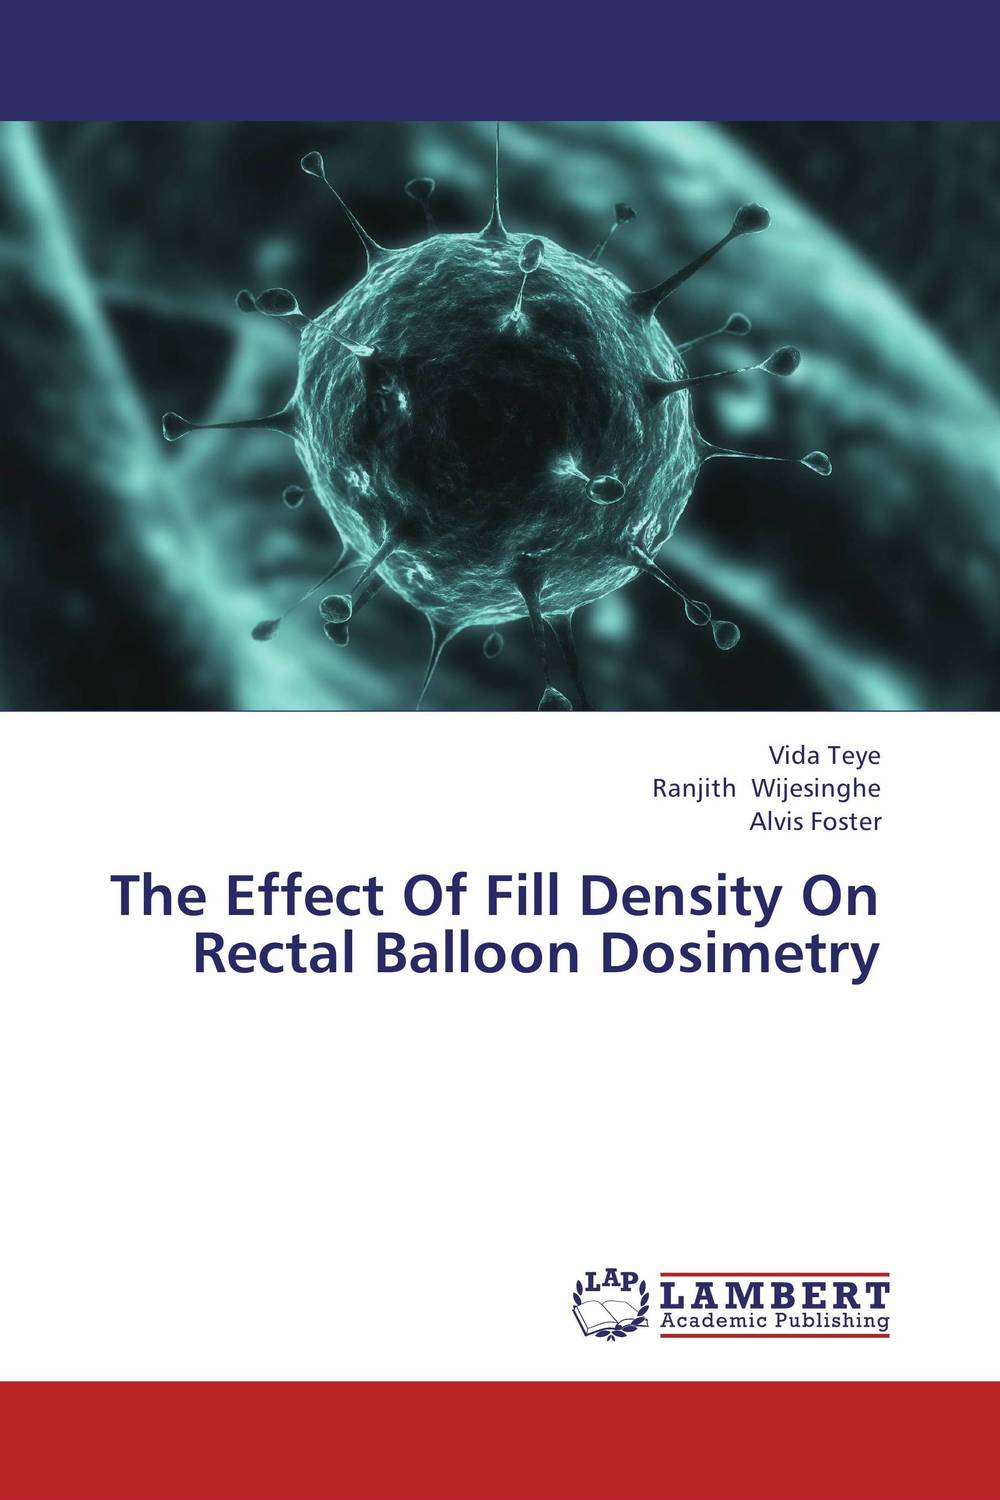 The Effect Of Fill Density On Rectal Balloon Dosimetry benign enlargement of prostate gland bep in ayurveda